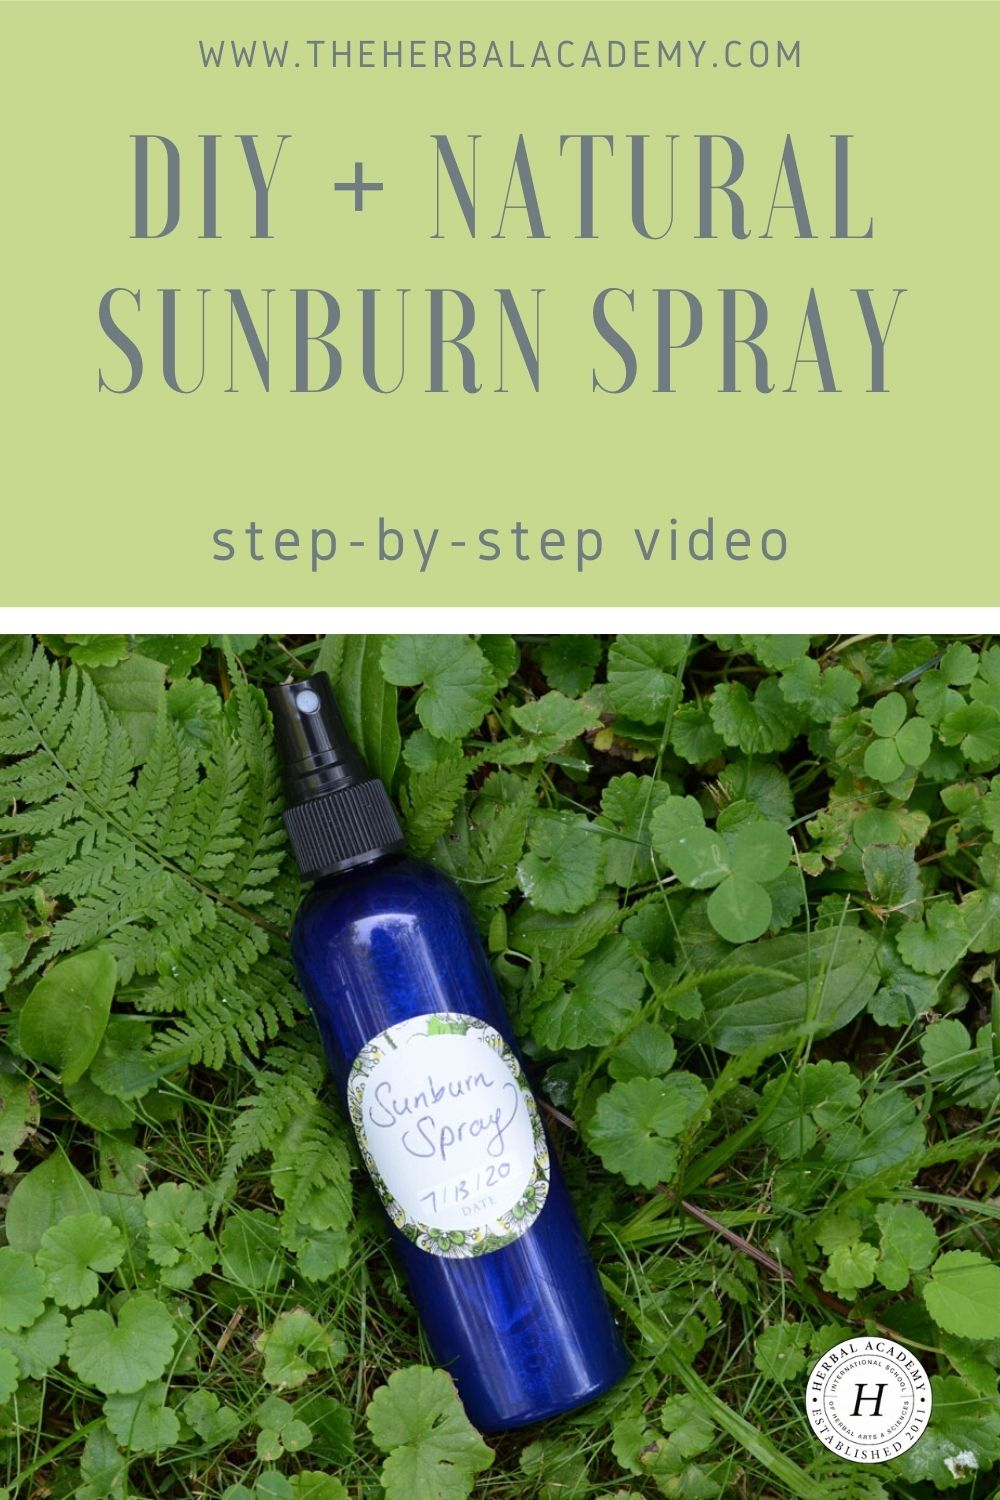 Homemade Sunburn Spray for After-Sun Care (With Video!) | Herbal Academy | In this post, learn how to make a simple, homemade sunburn spray that helps cool discomfort associated with too much sunshine.